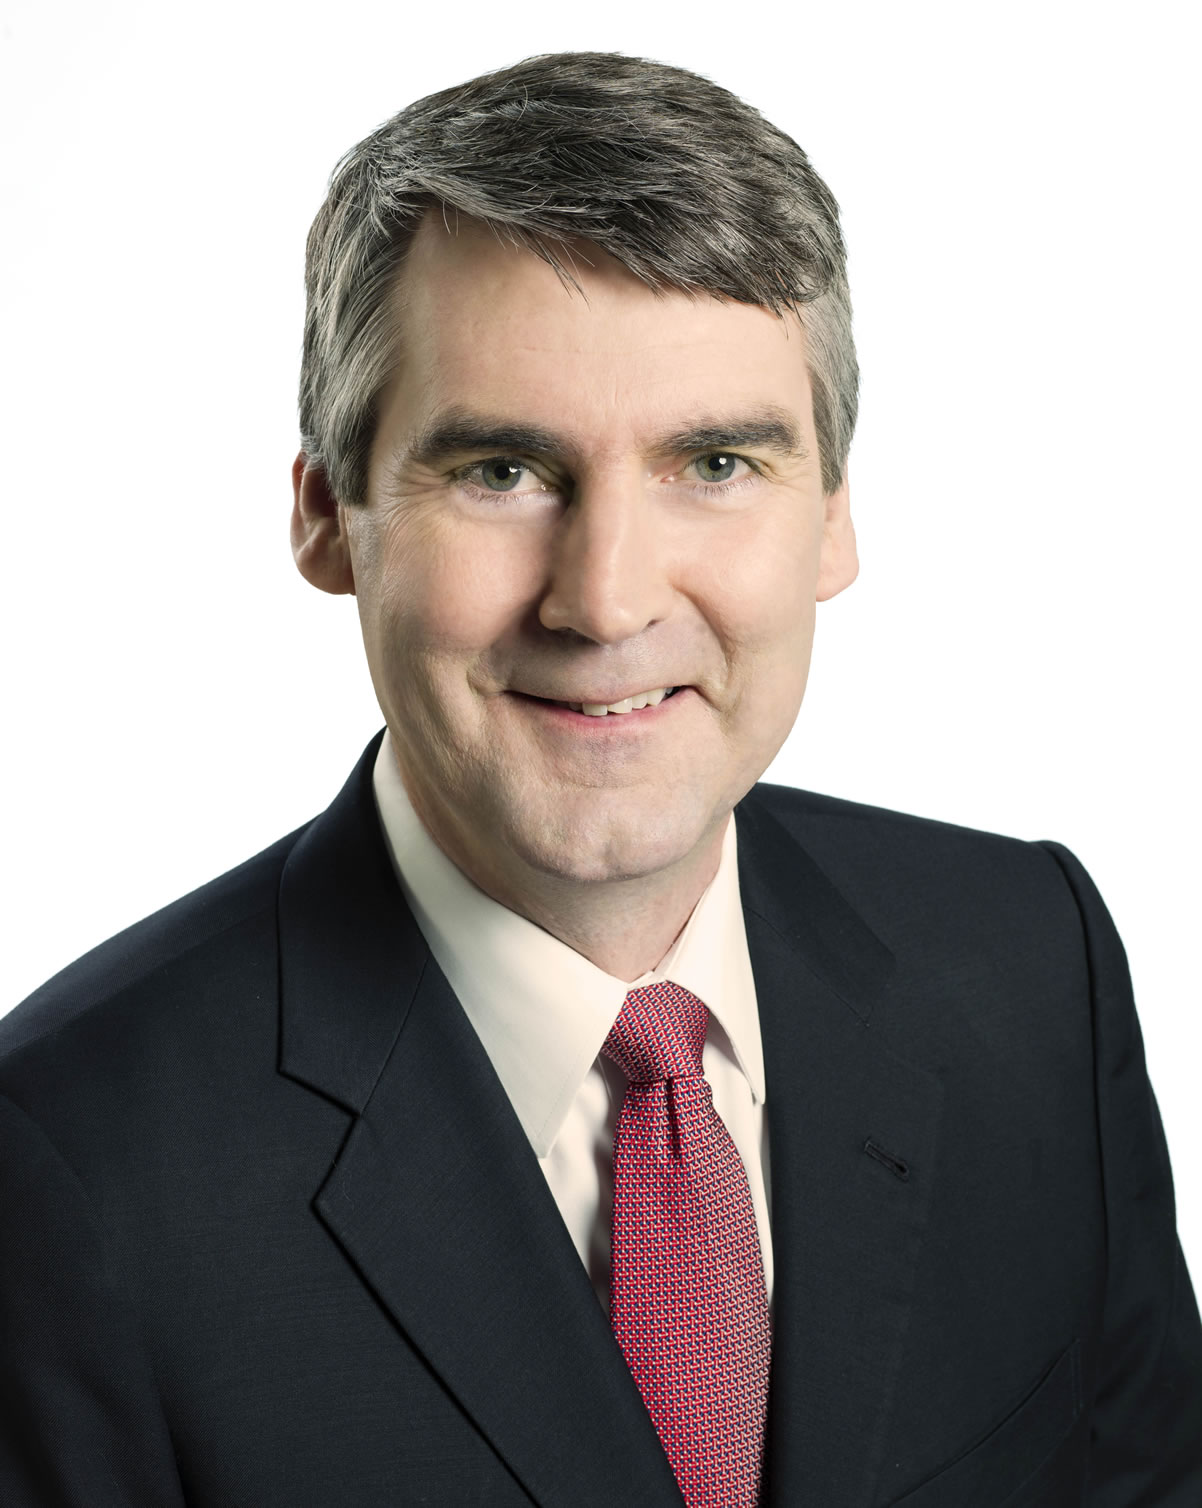 The Honourable Stephen McNeil